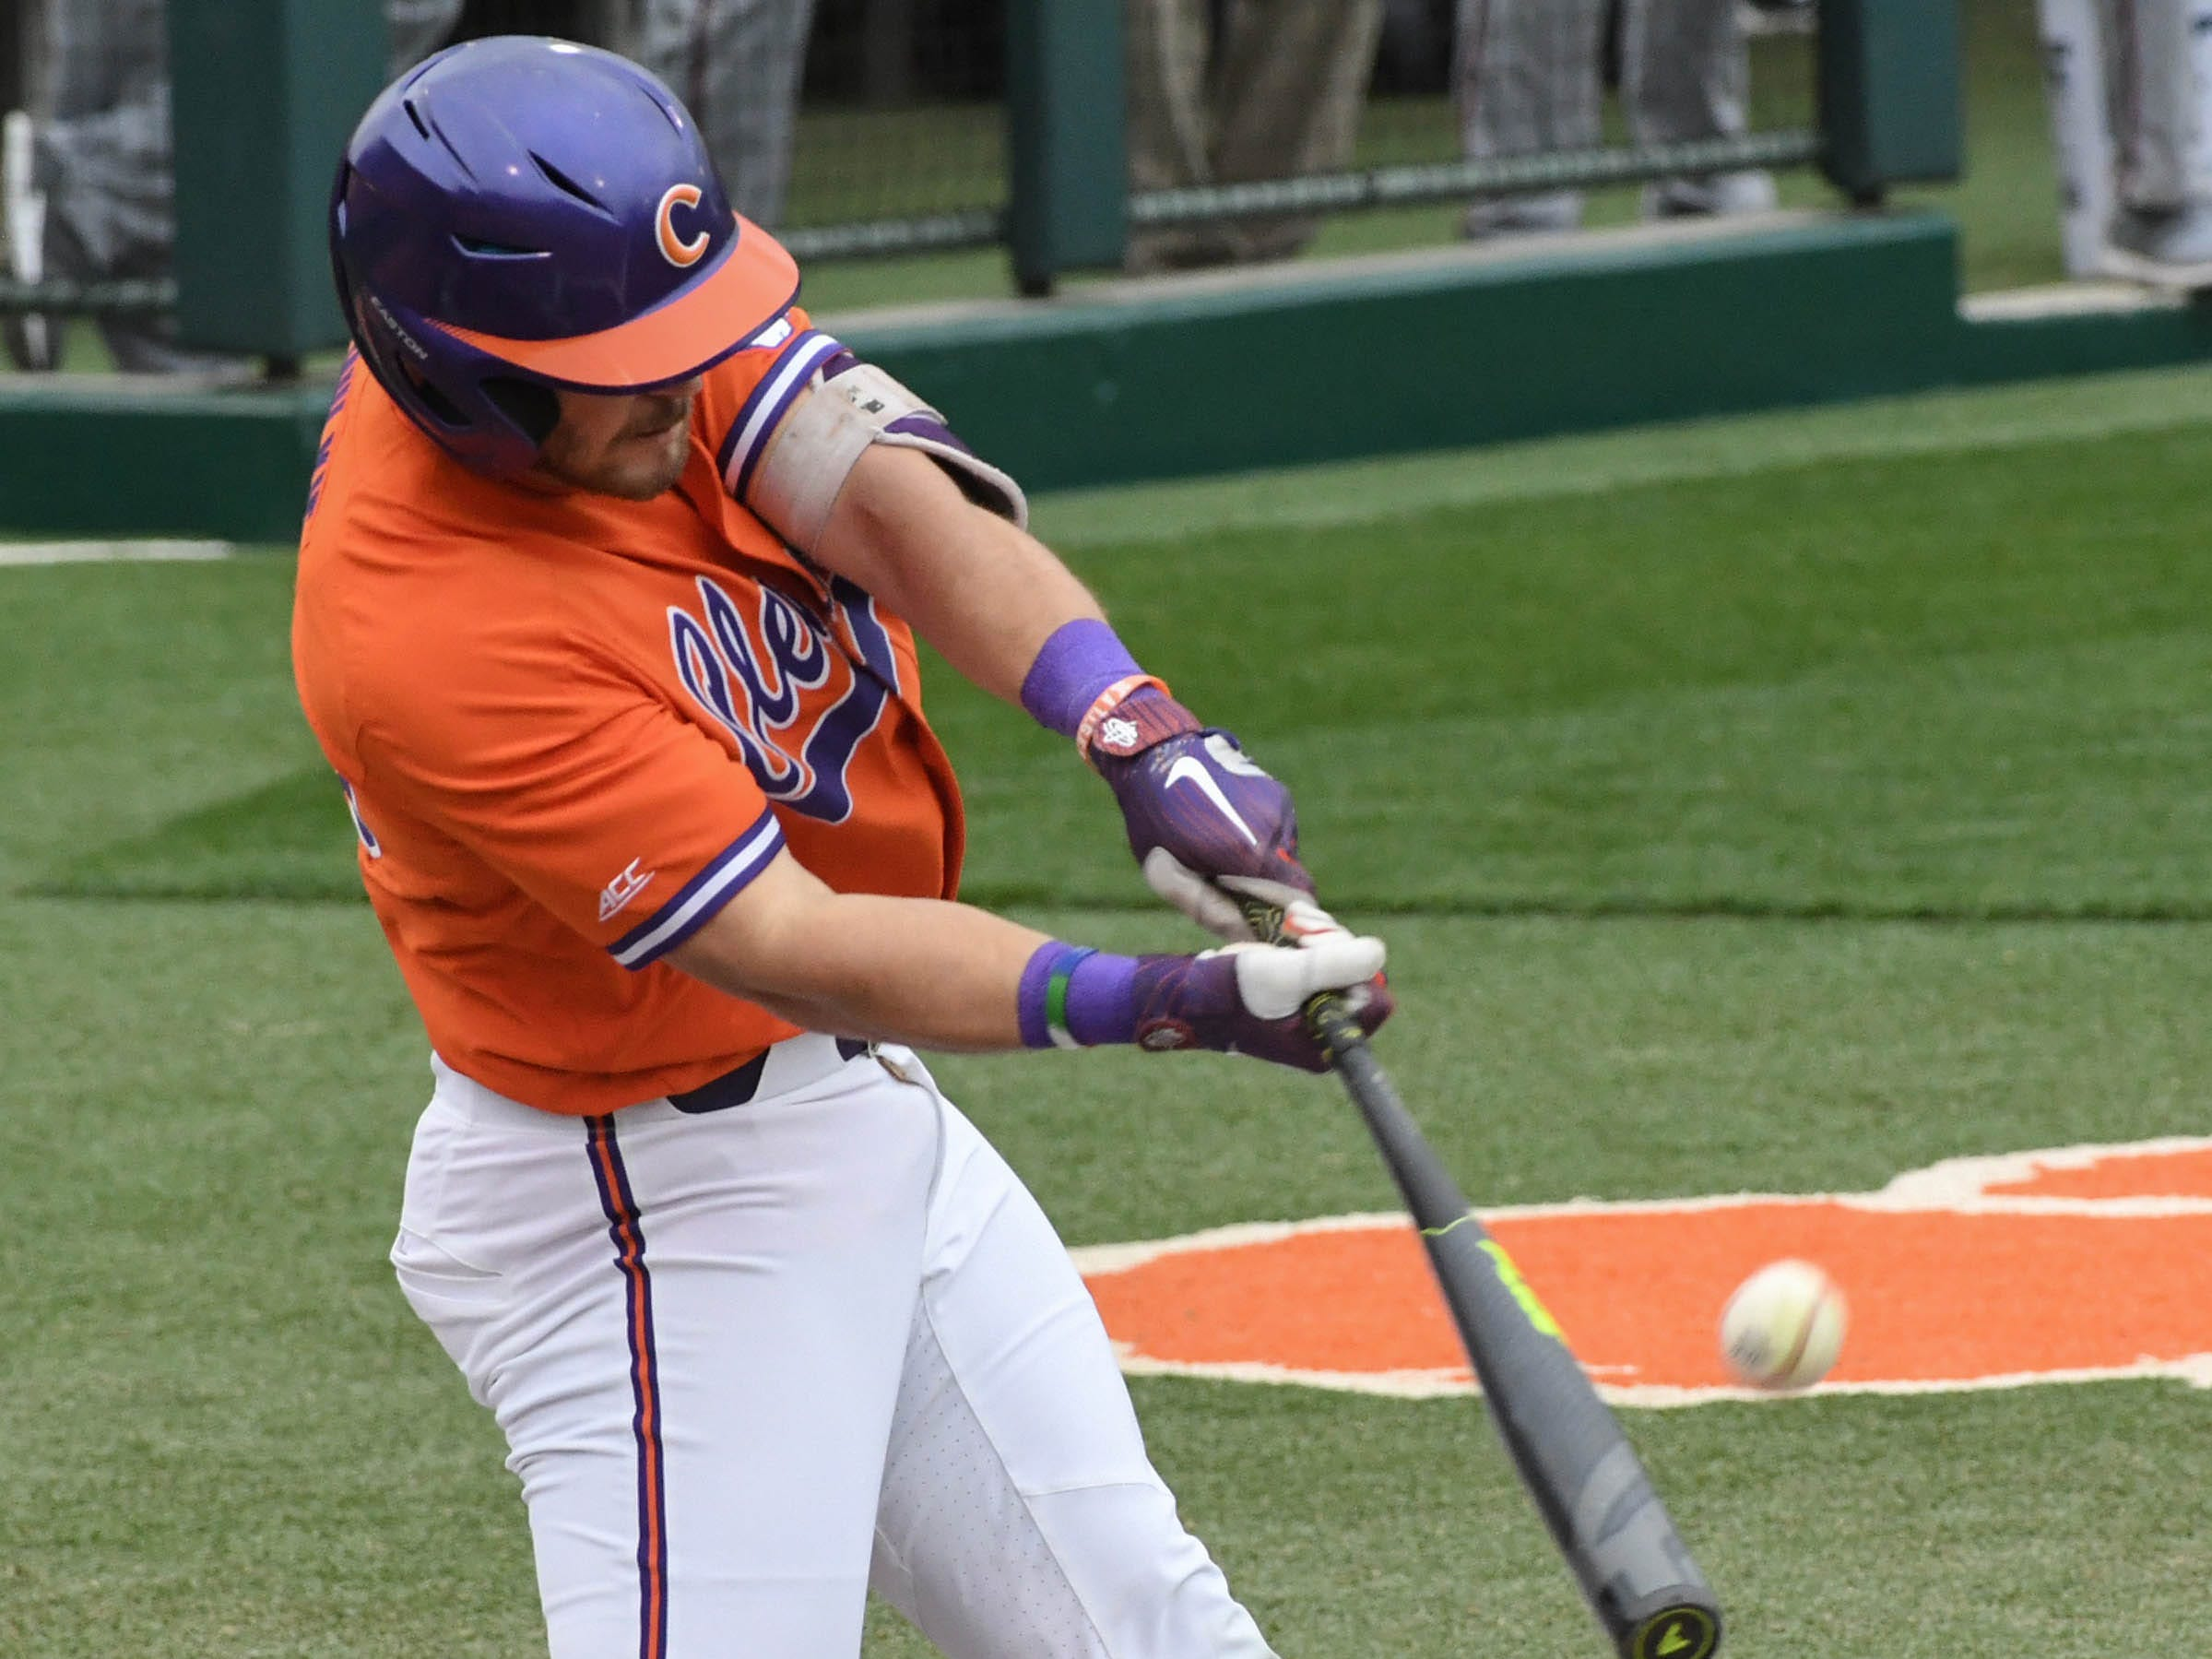 Clemson junior Kyle Wilkie(10) hits a ball against South Alabama during the bottom of the first inning at Doug Kingsmore Stadium in Clemson Friday, February 15, 2019.